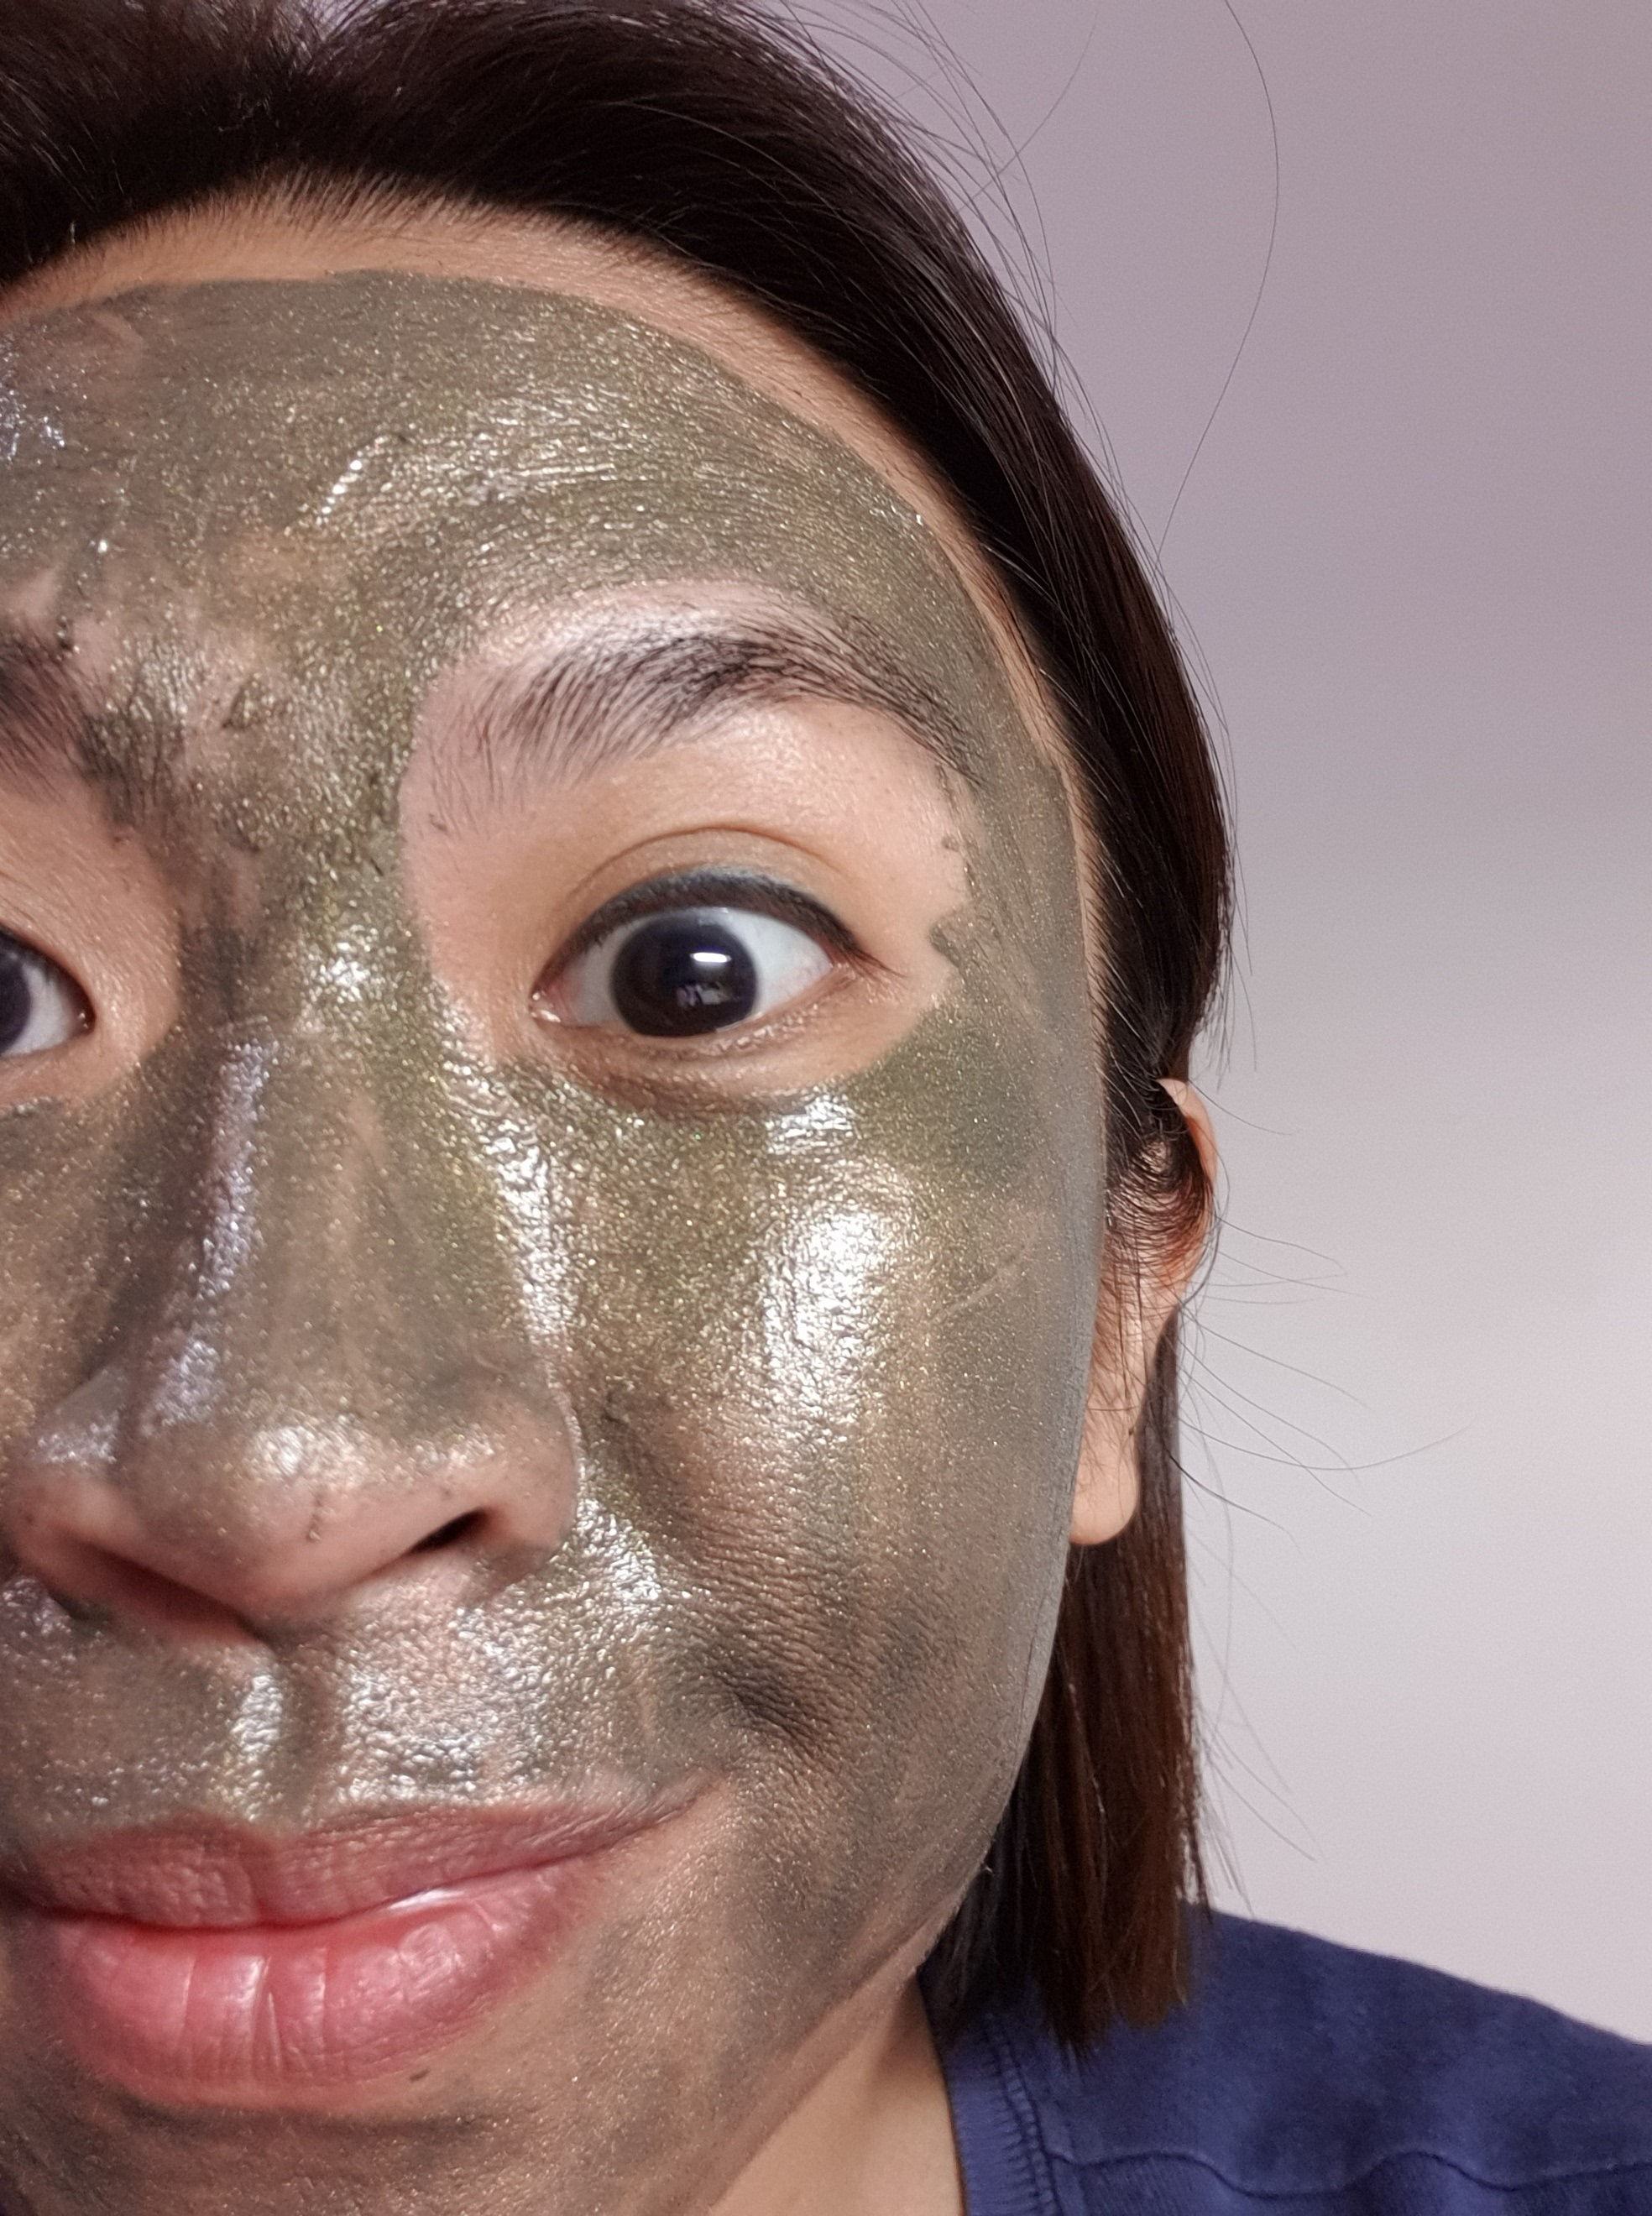 Amidst home schooling, clinical work & household chores, here I am trying to keep my sanity the best way I know how -- masking! LOL!